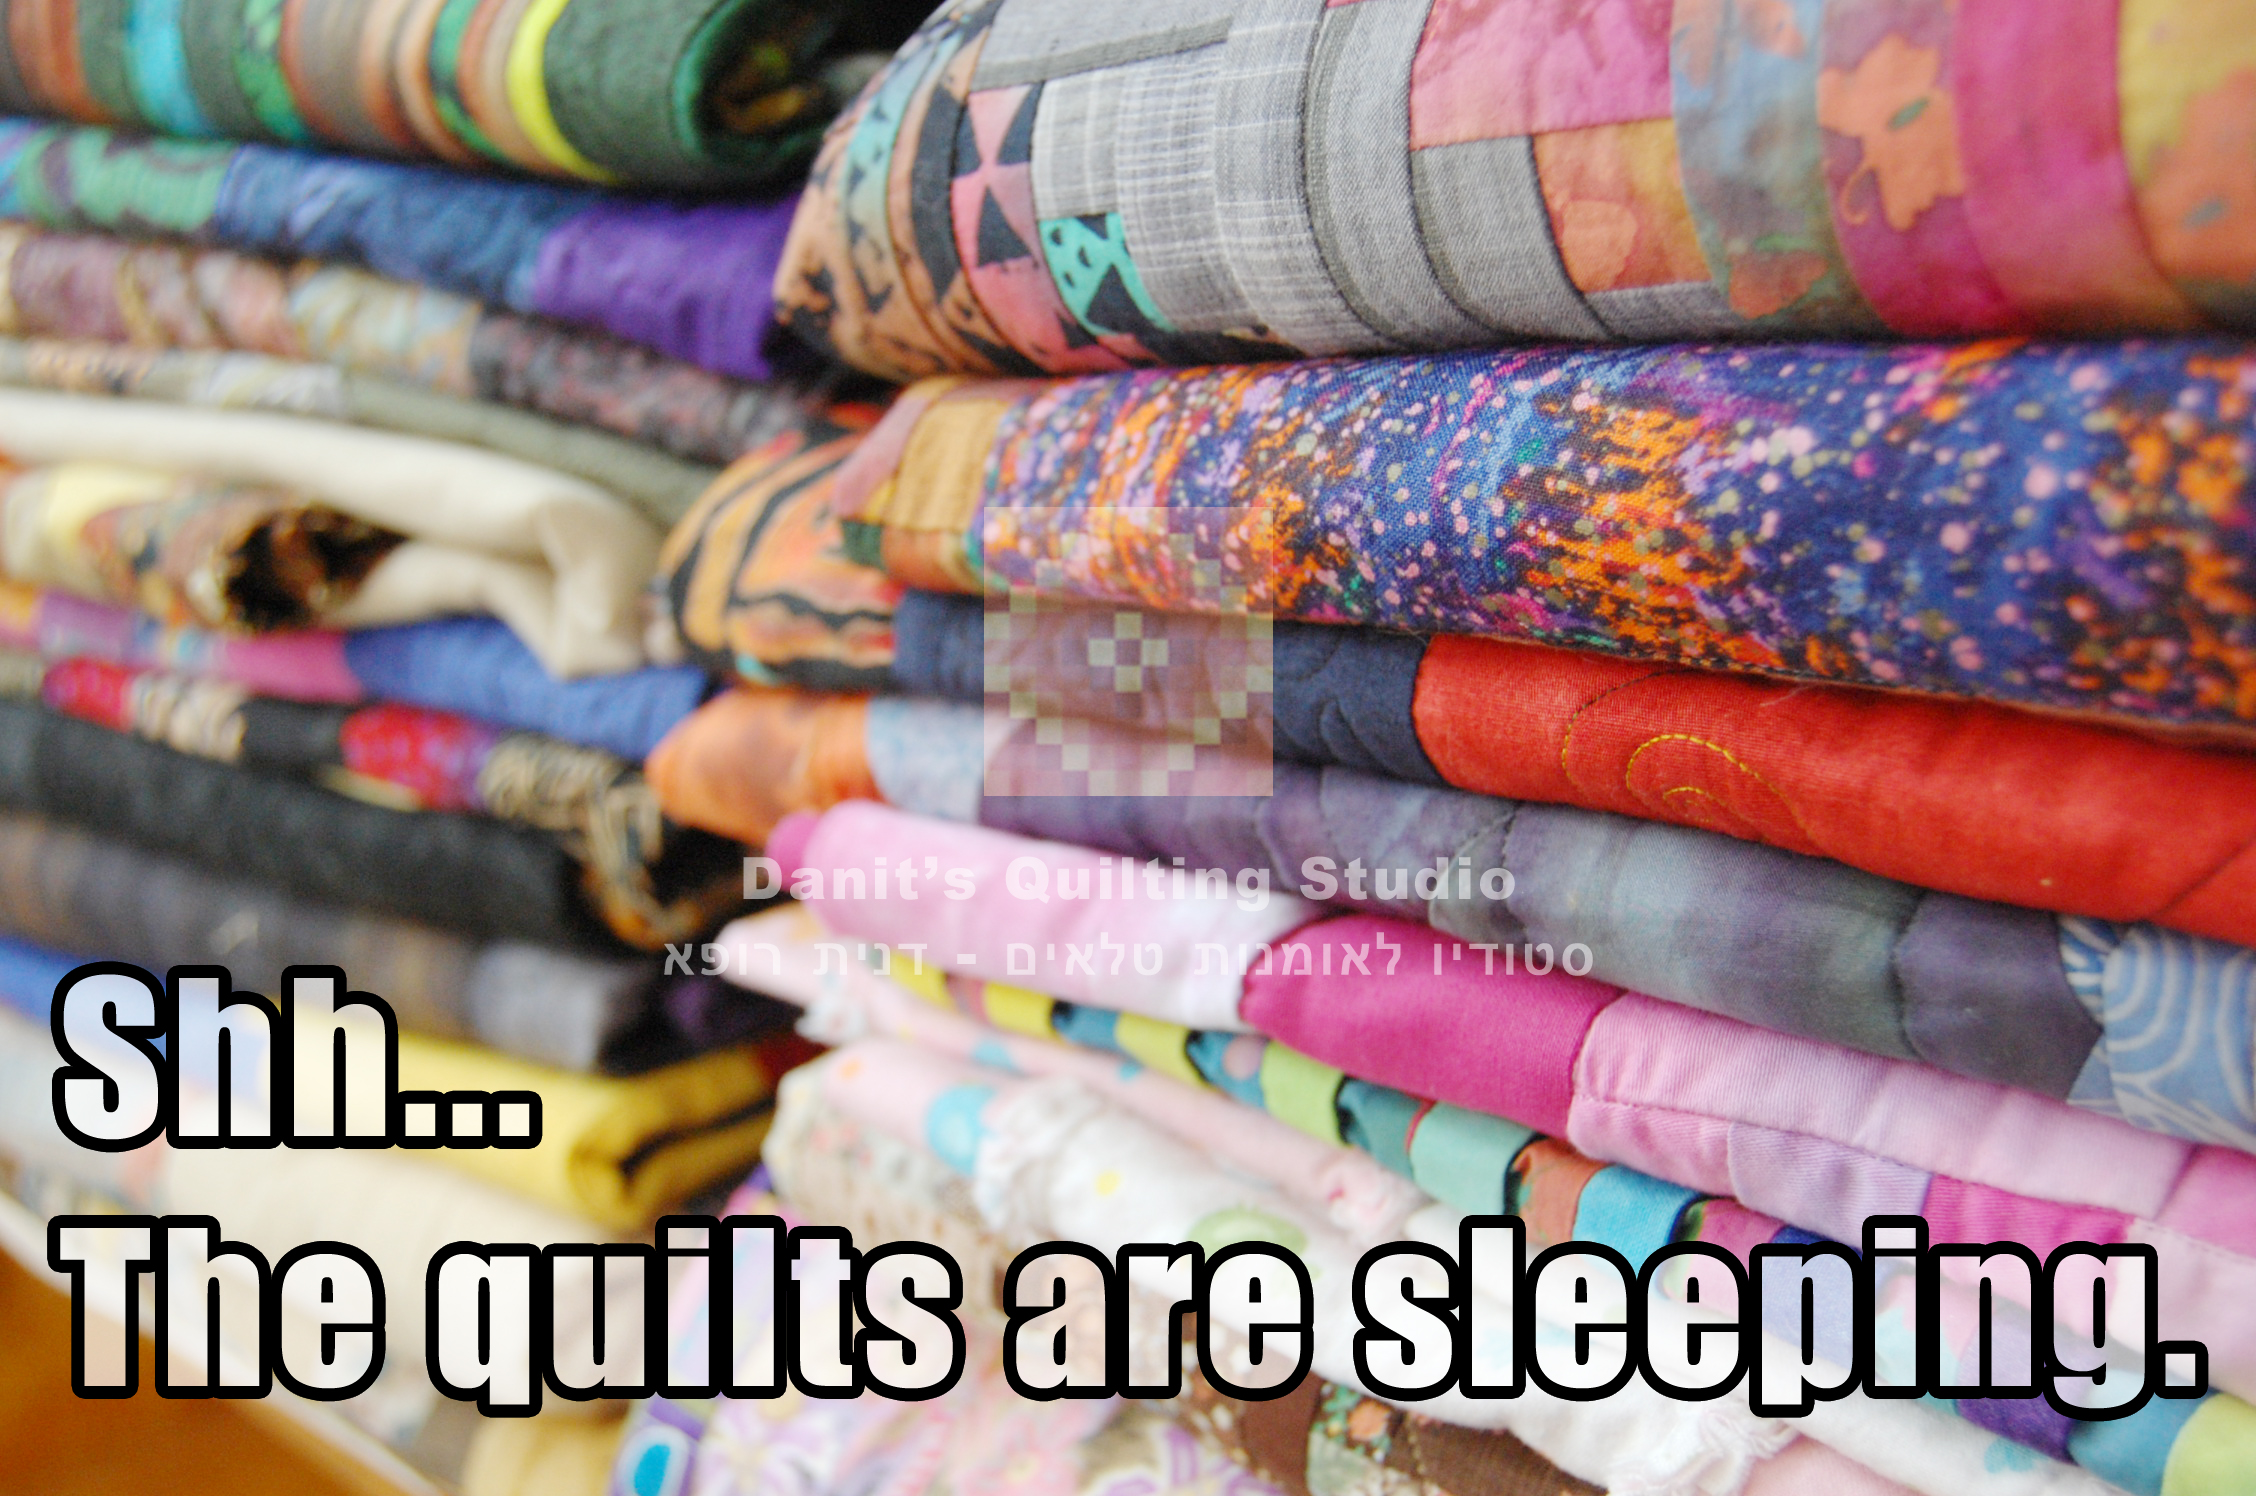 shh the quilts are sleeping.jpg